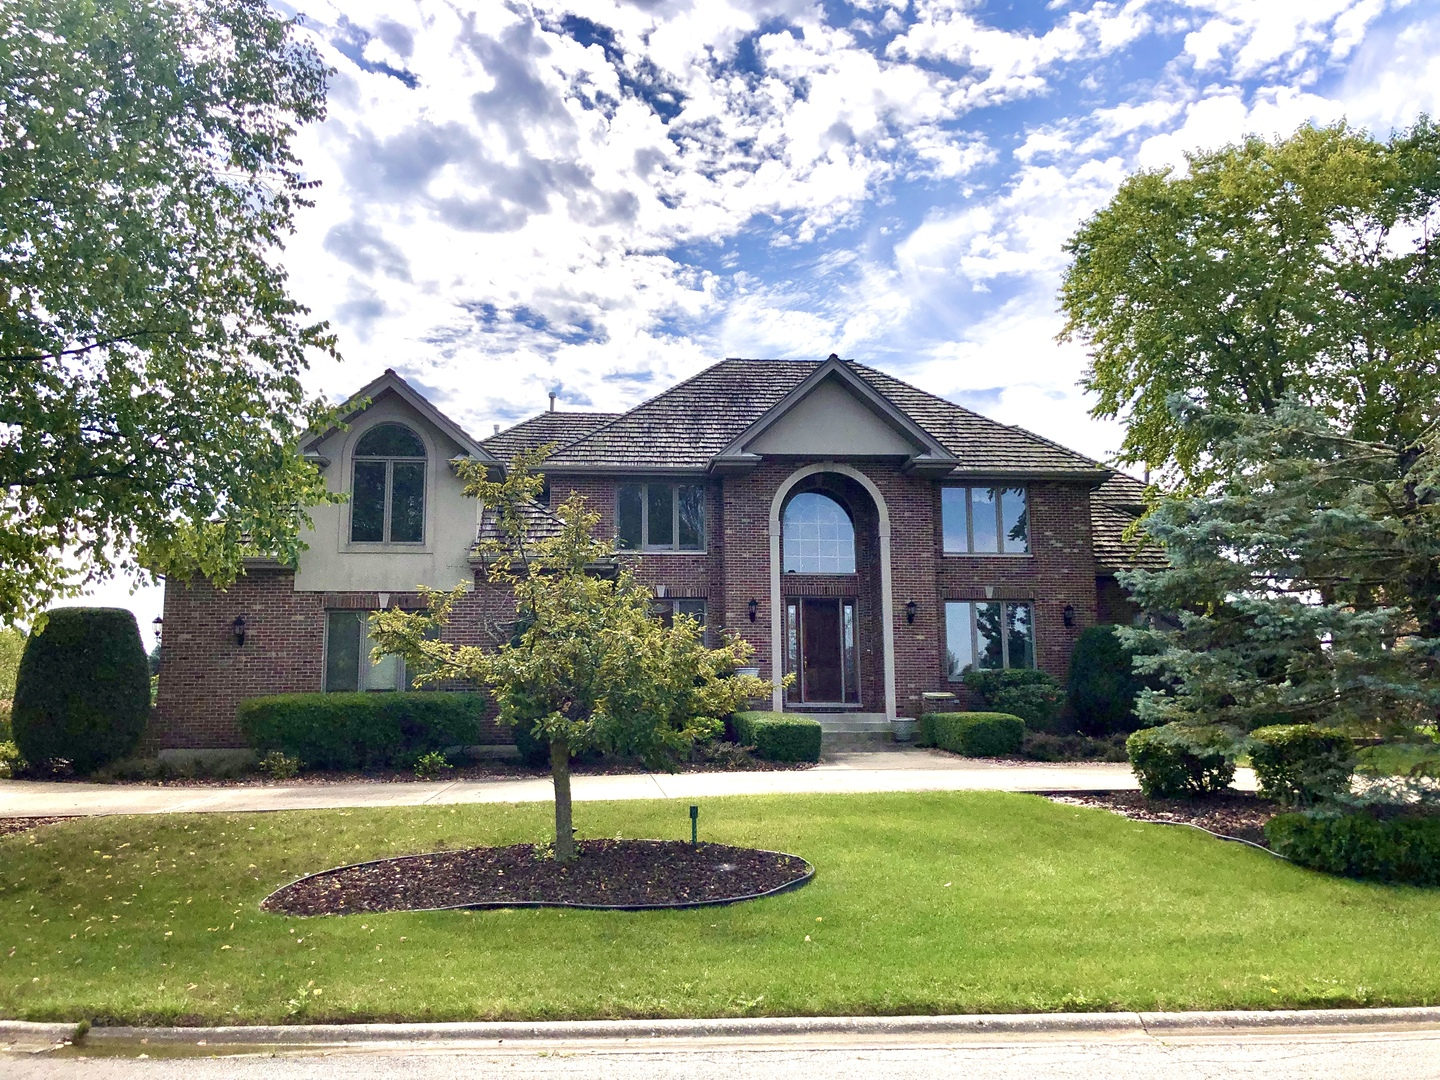 Property for sale at 67 Ruffled Feathers Drive, Lemont,  Il 60439